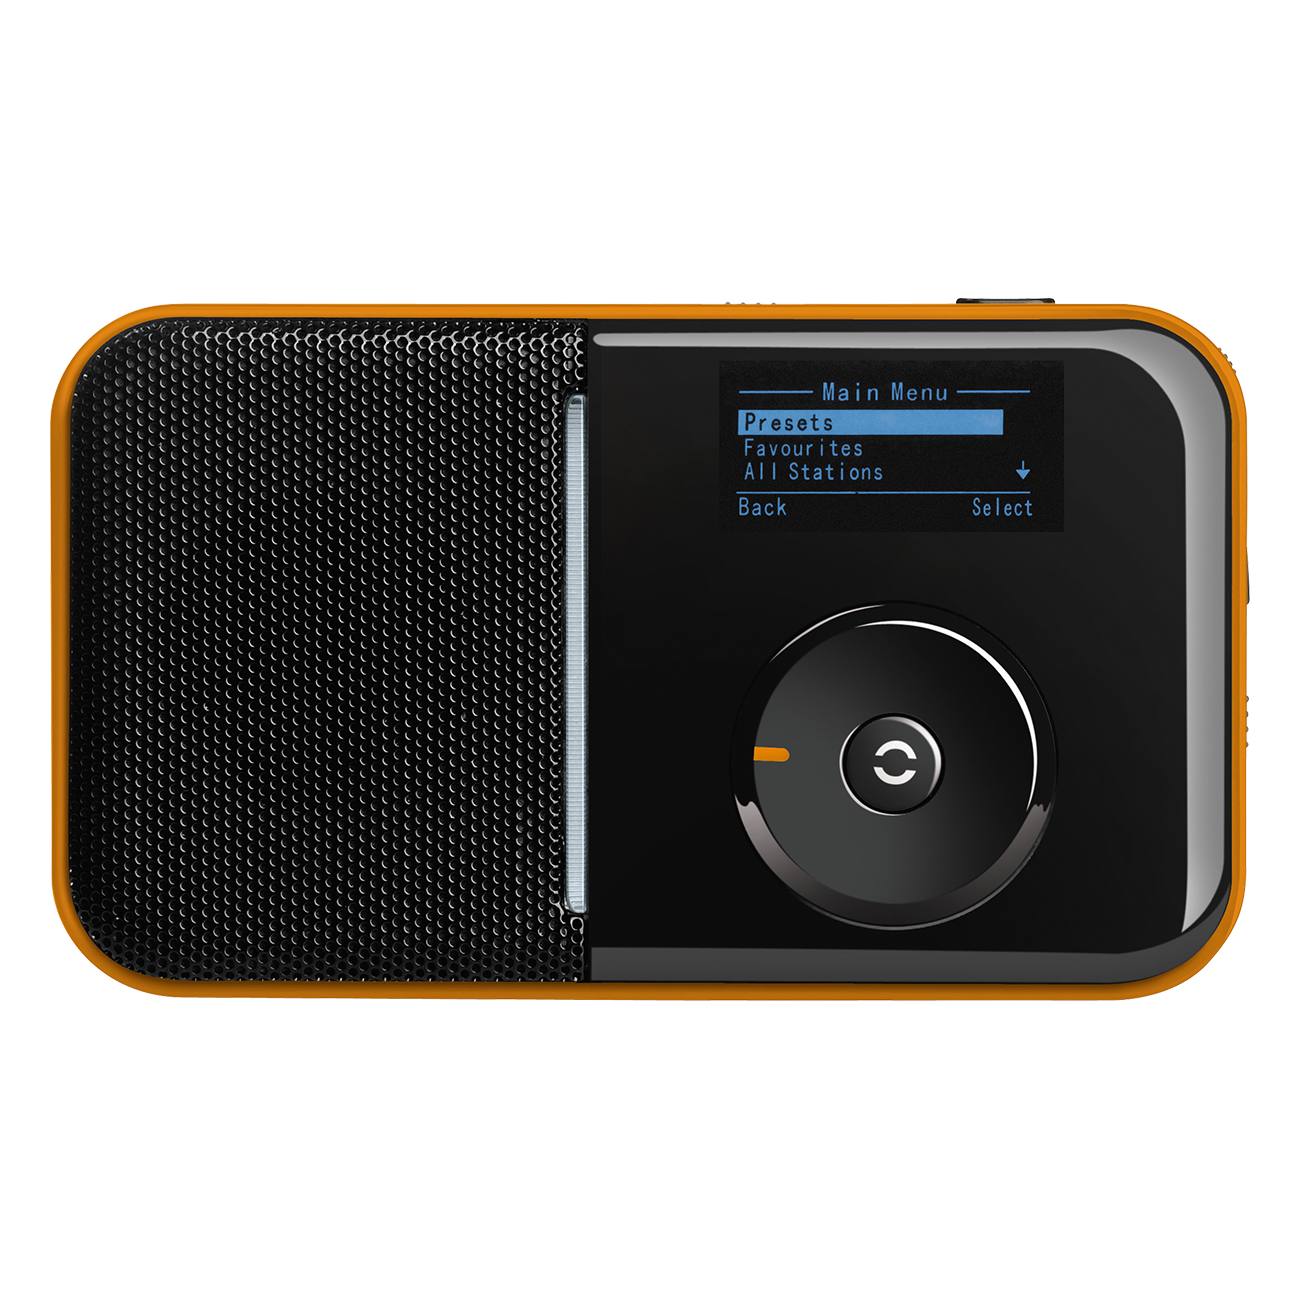 SIR 007 ORANGE Radio portabil-receptor-internet -wifi